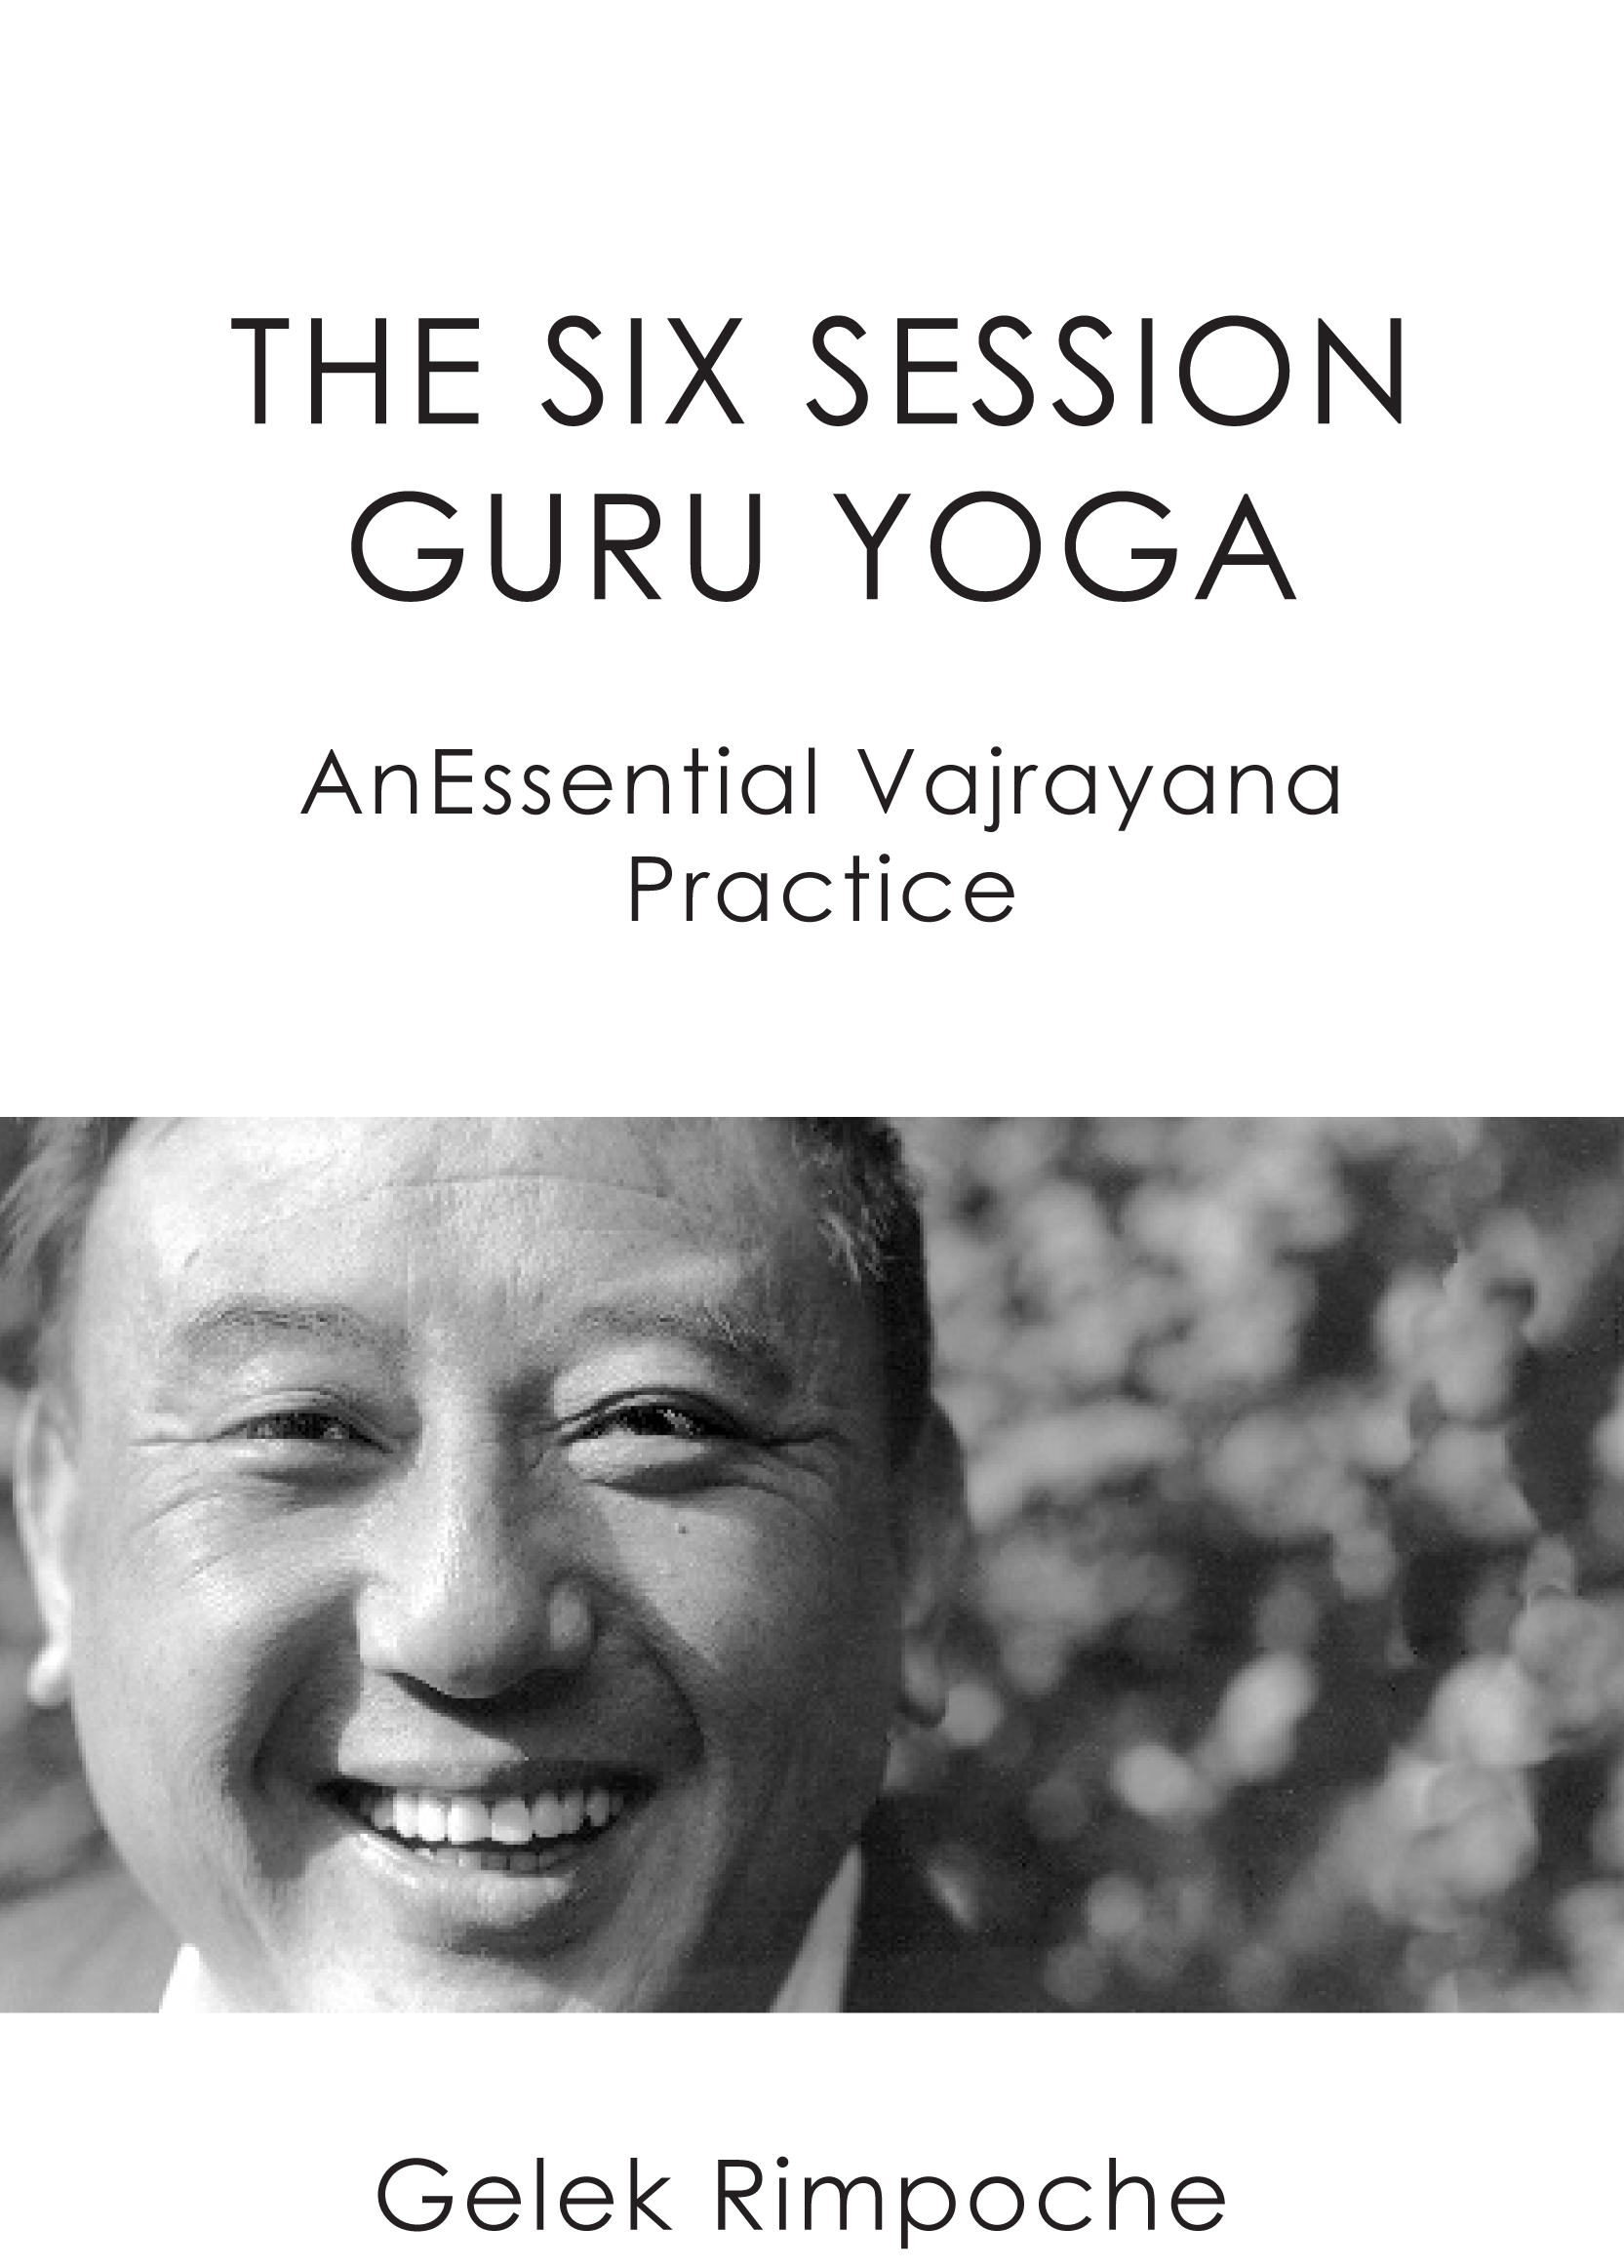 The Six Session Guru Yoga